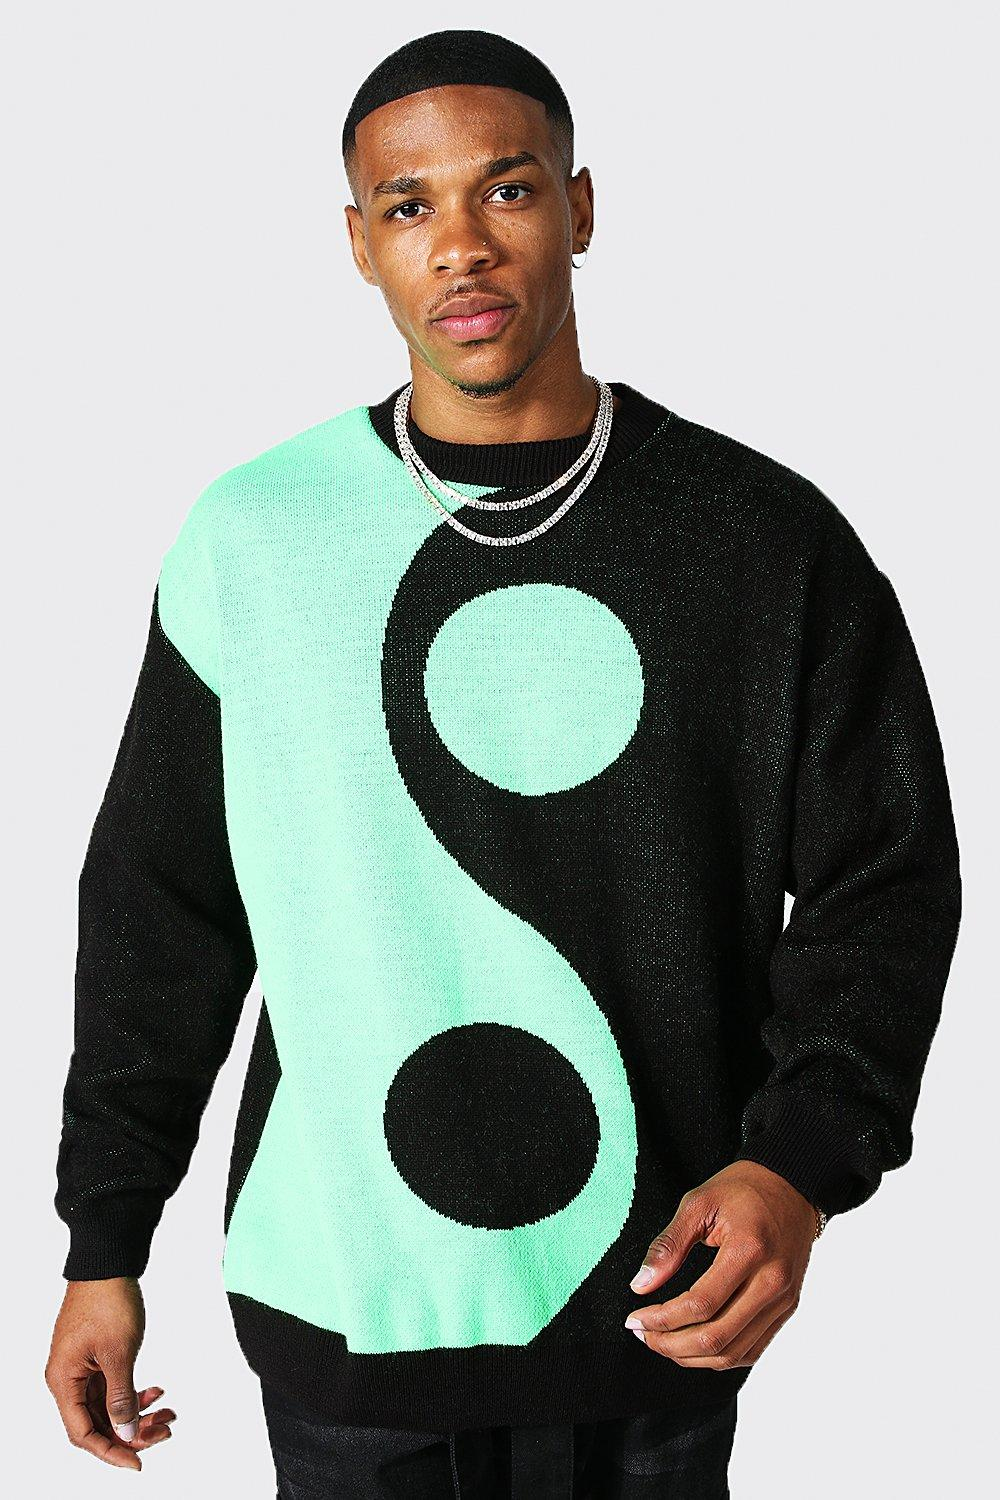 Men's Vintage Sweaters, Retro Jumpers 1920s to 1980s Mens Oversized Yin  Yang Knitted Sweater - Green $19.20 AT vintagedancer.com